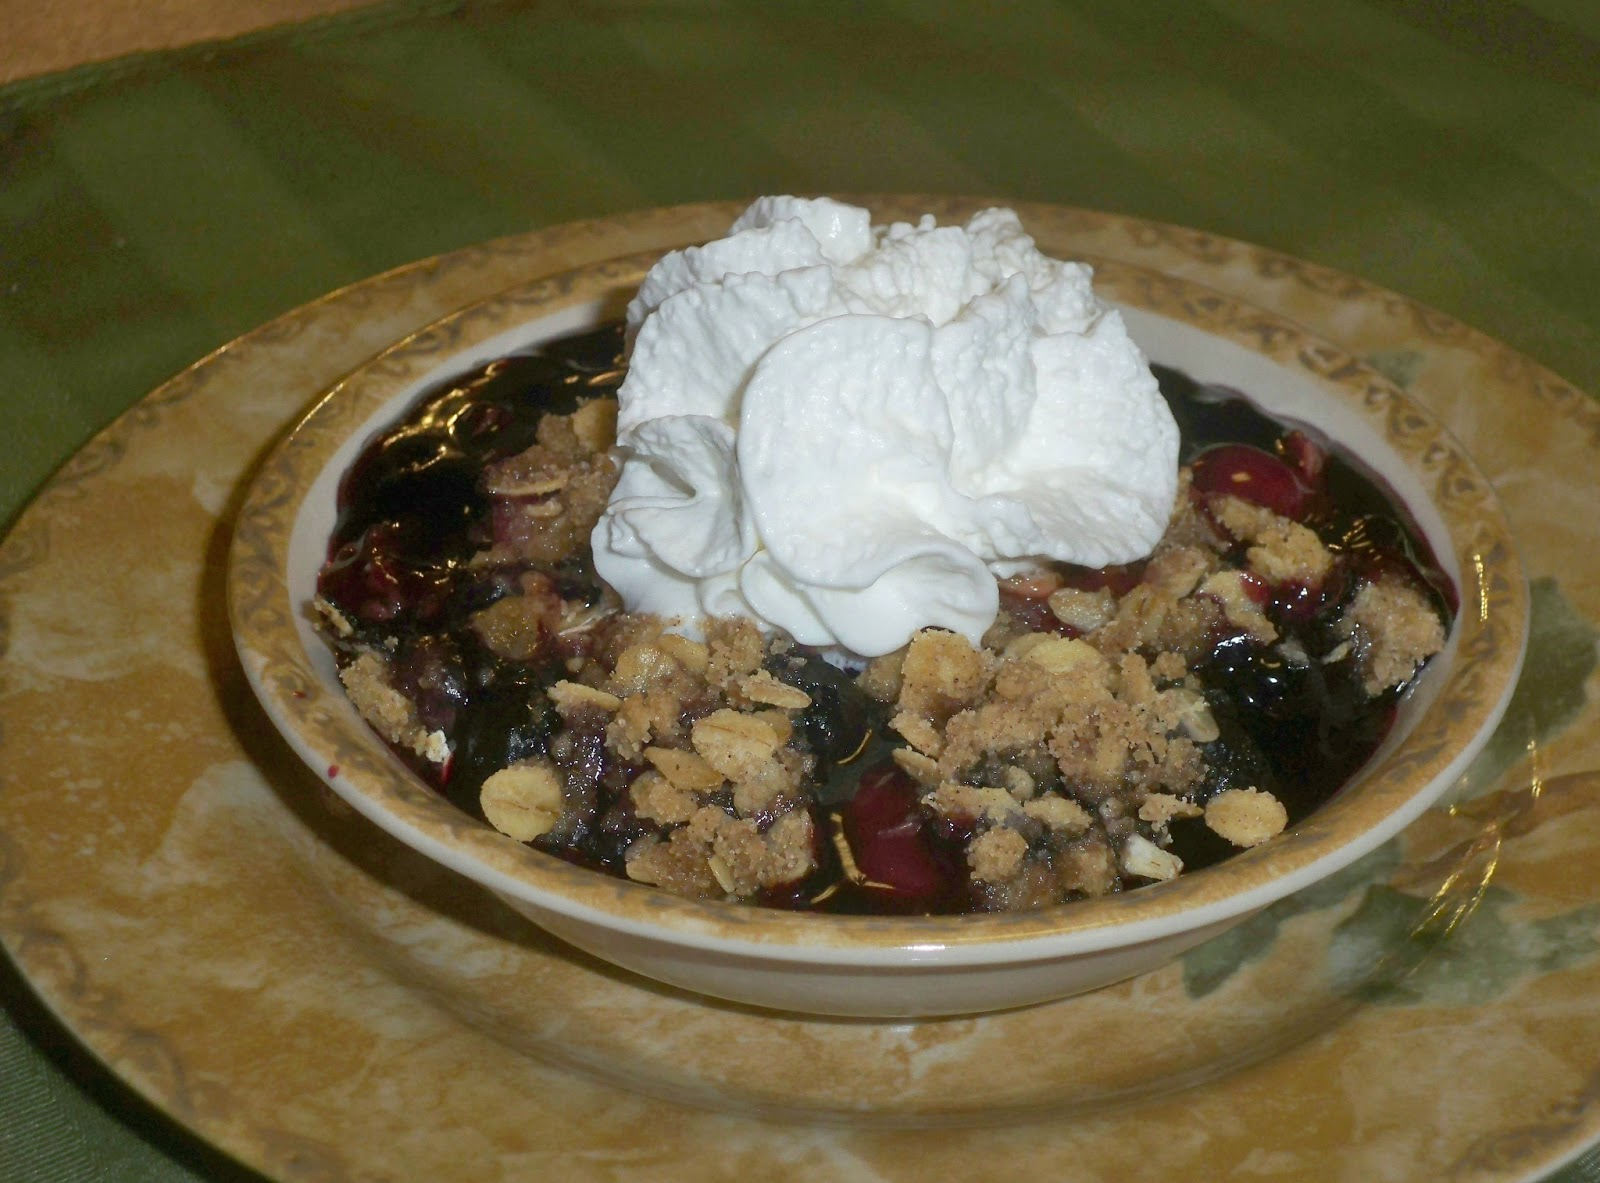 Plate Garnishes for Entries http://grammasinthekitchen.blogspot.com/2013/02/super-berry-crisp.html